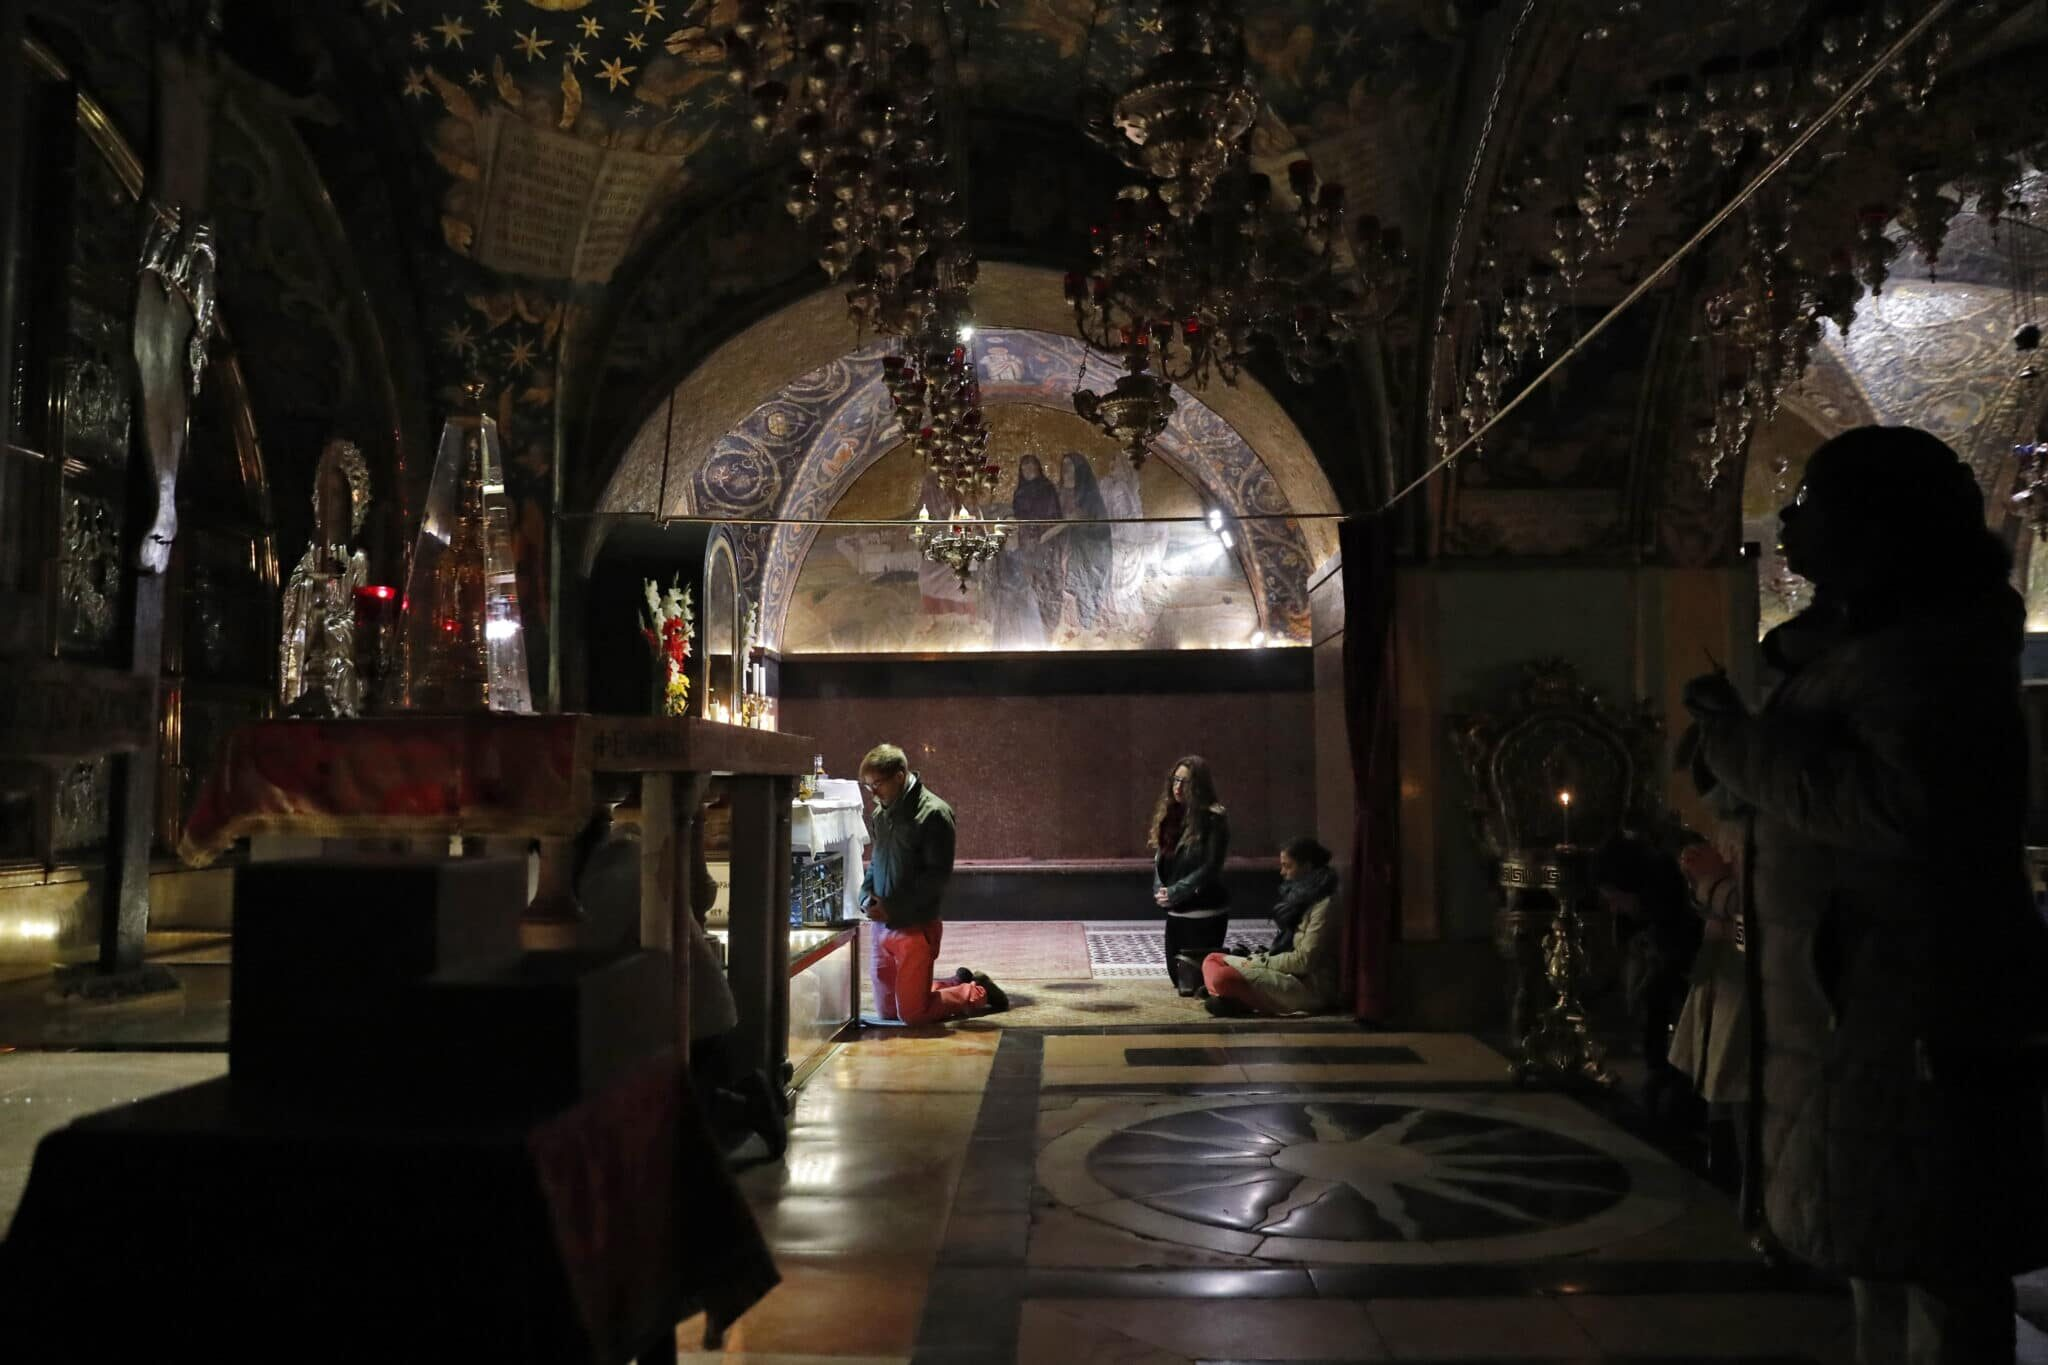 Palestine- Church of the Holy Sepulchre